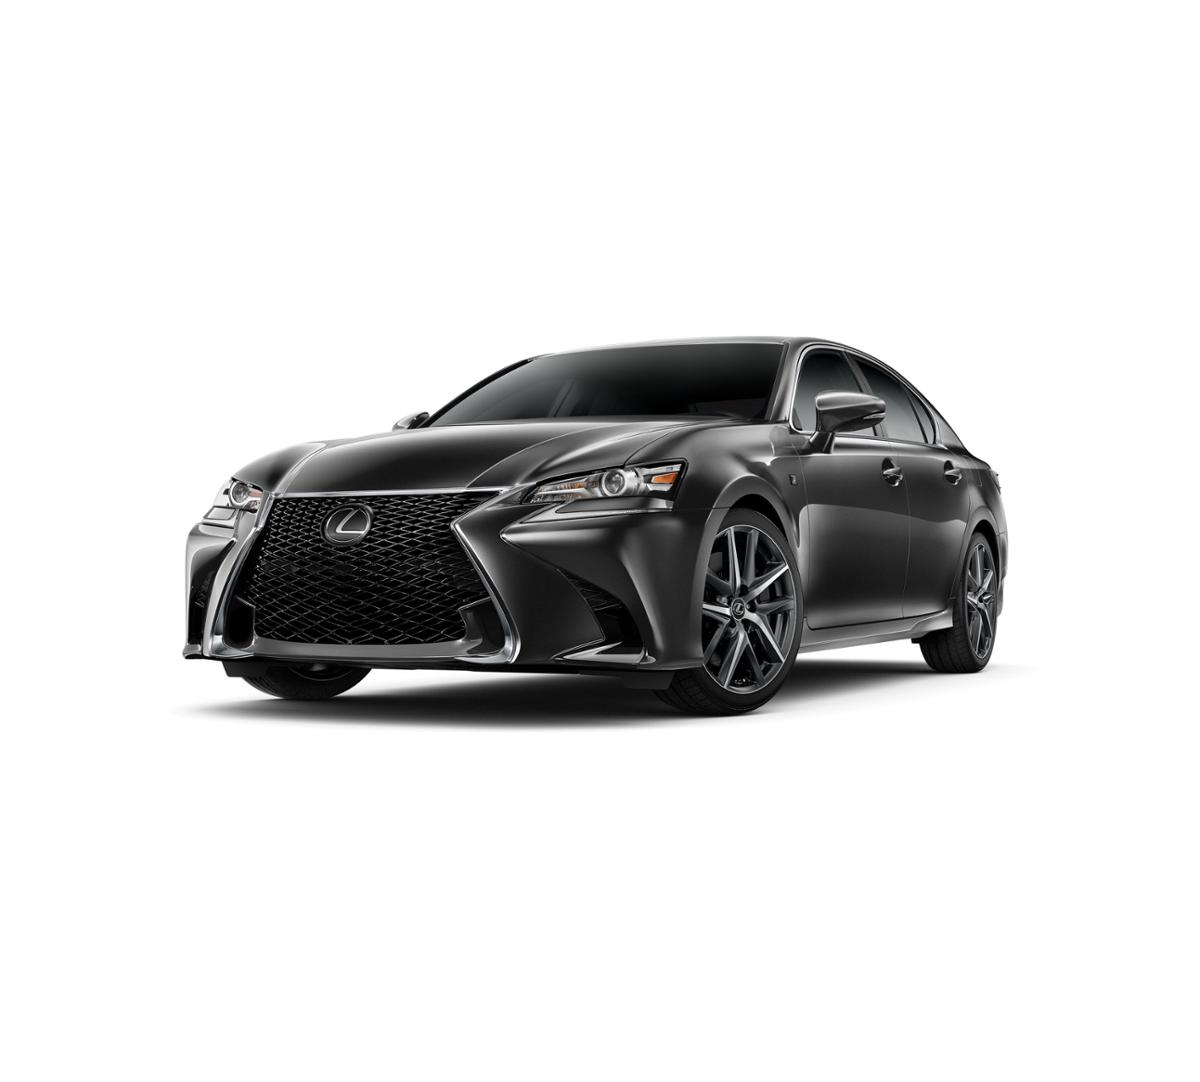 2018 Lexus GS 350 Vehicle Photo in Las Vegas, NV 89146